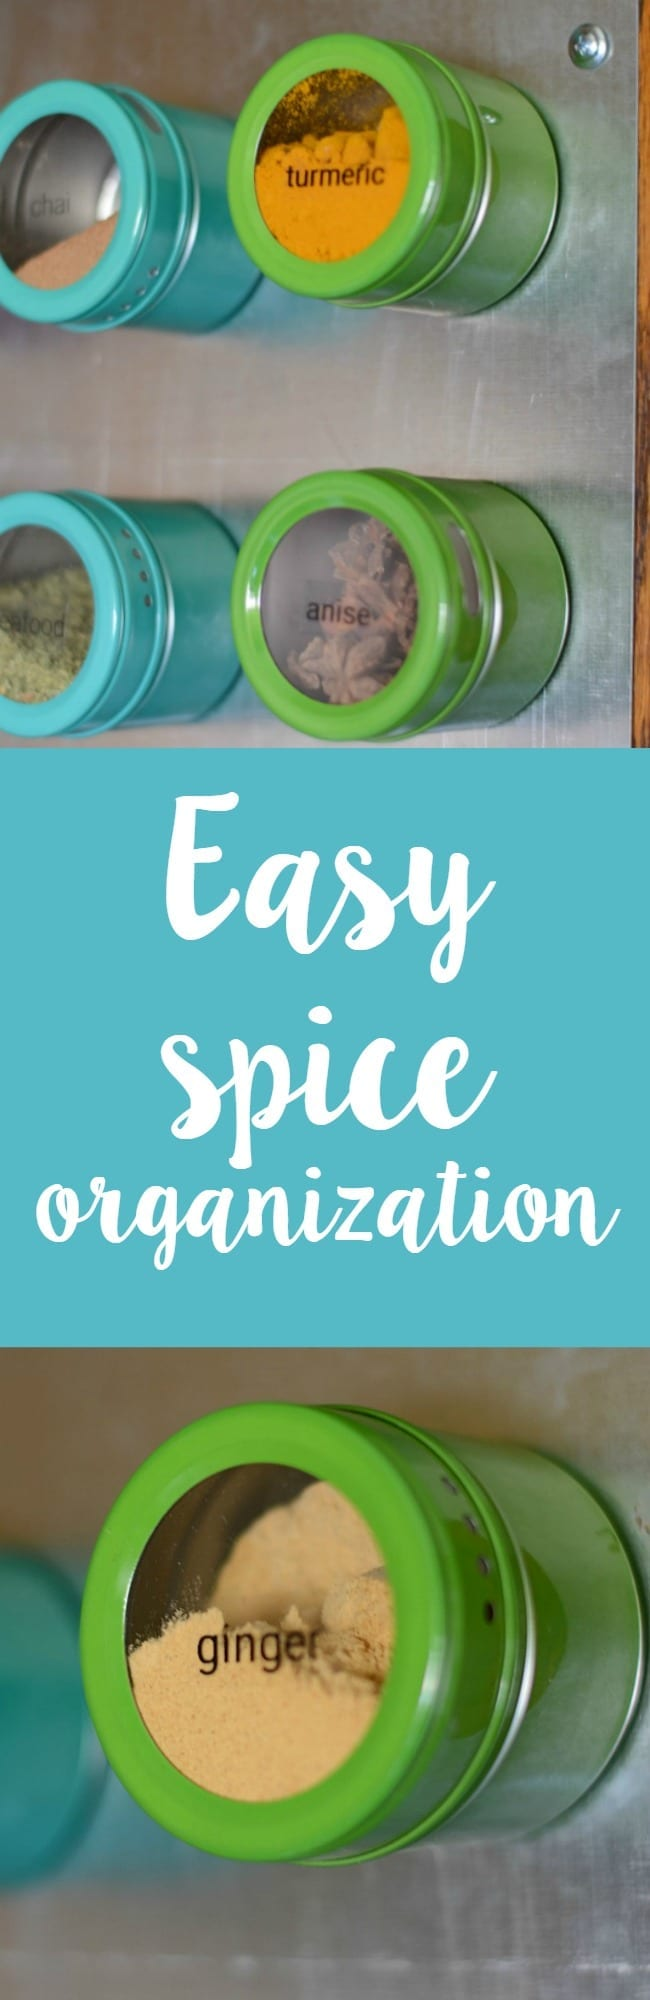 How to easily organize your spices!